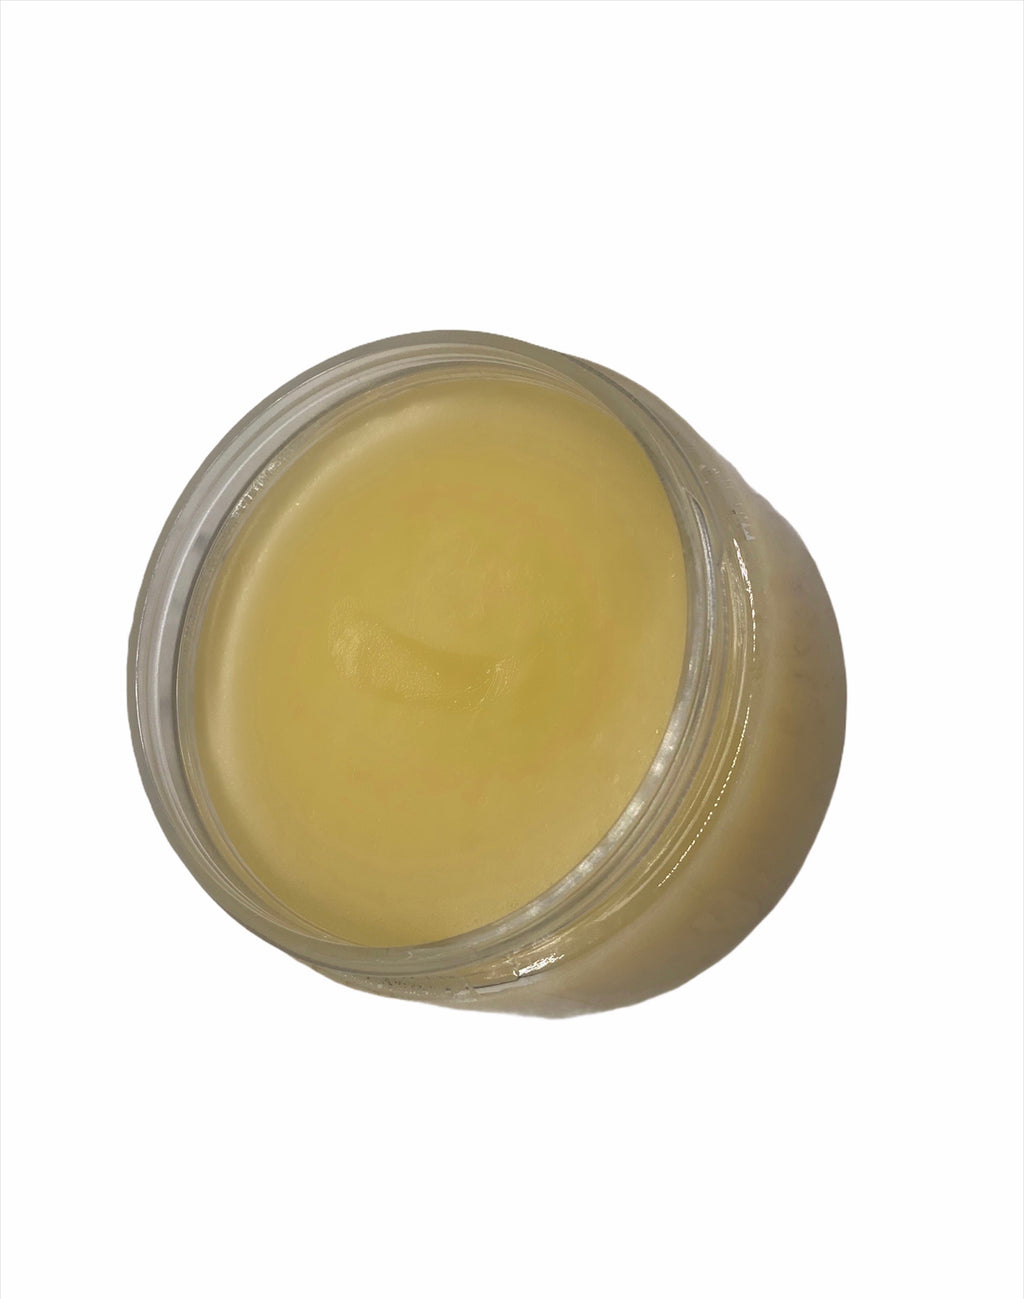 Melted Cleansing Balm